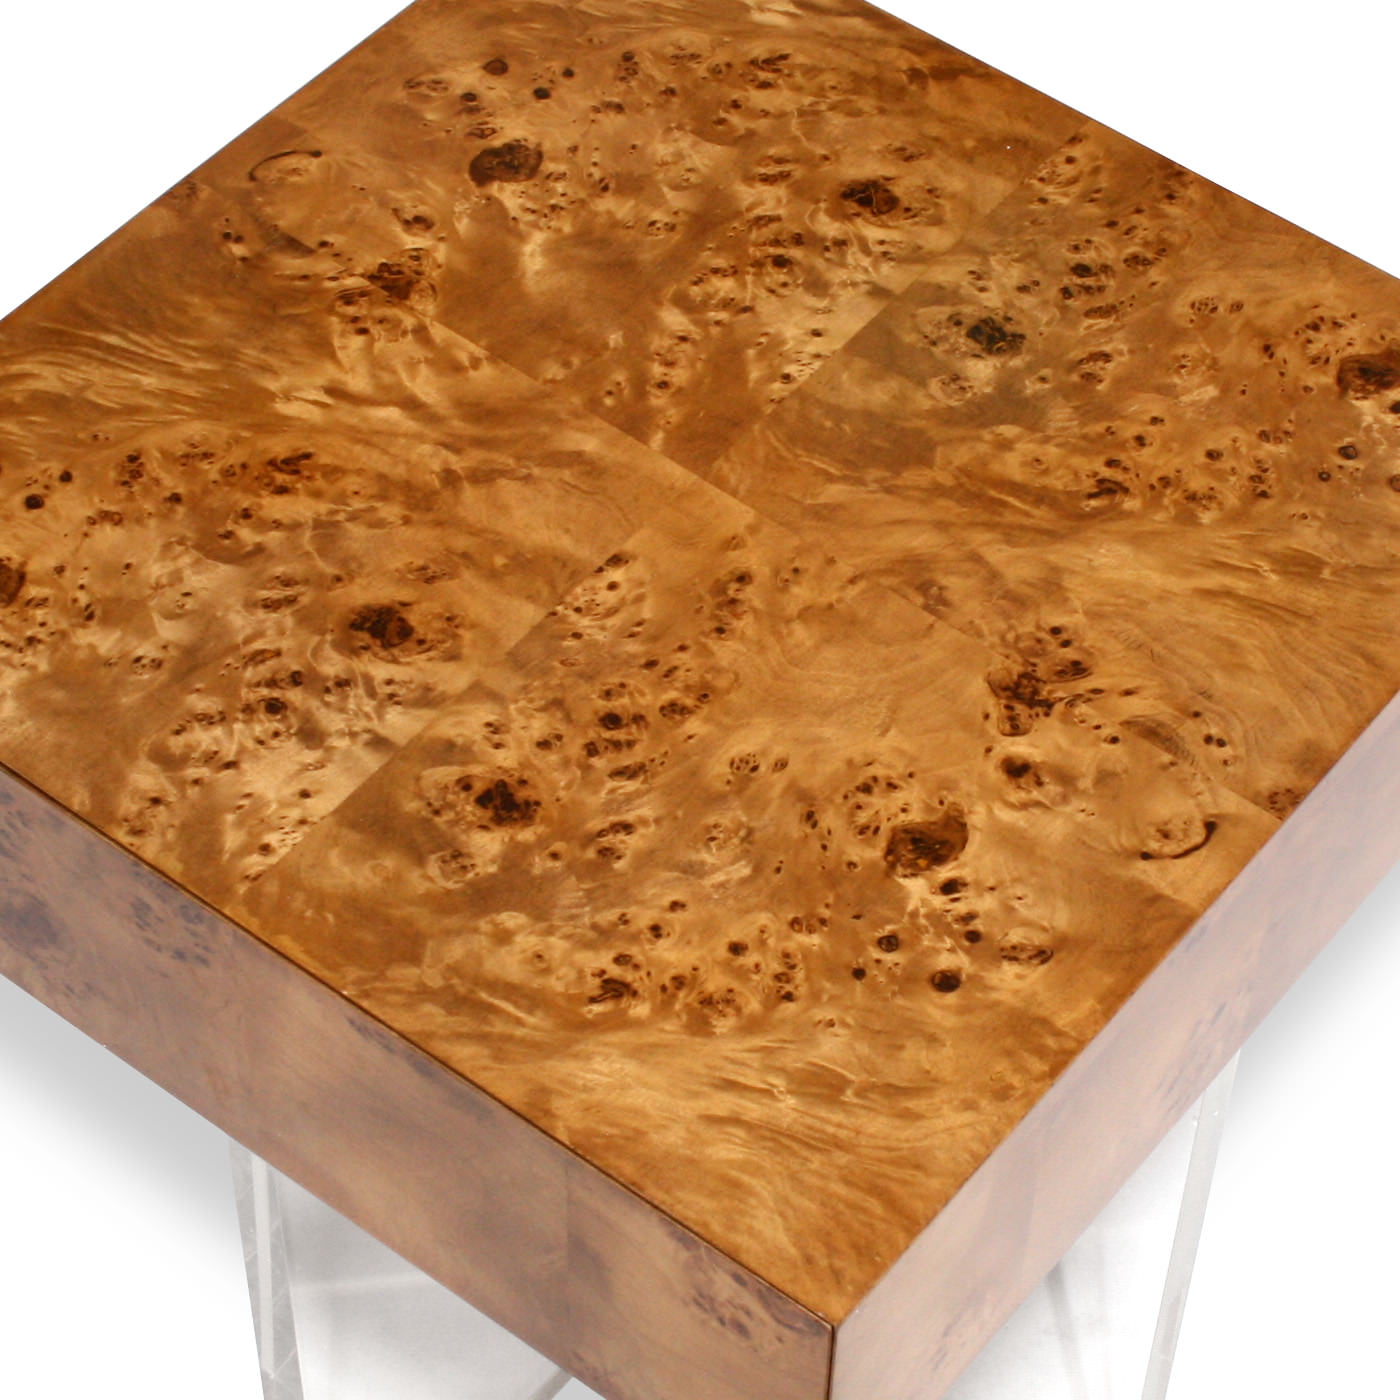 inch tall side table the perfect real burl wood end ideas bond modern furniture jonathan adler alt bedroom gun safe marble and brass coffee retro slim half round bedside glass top